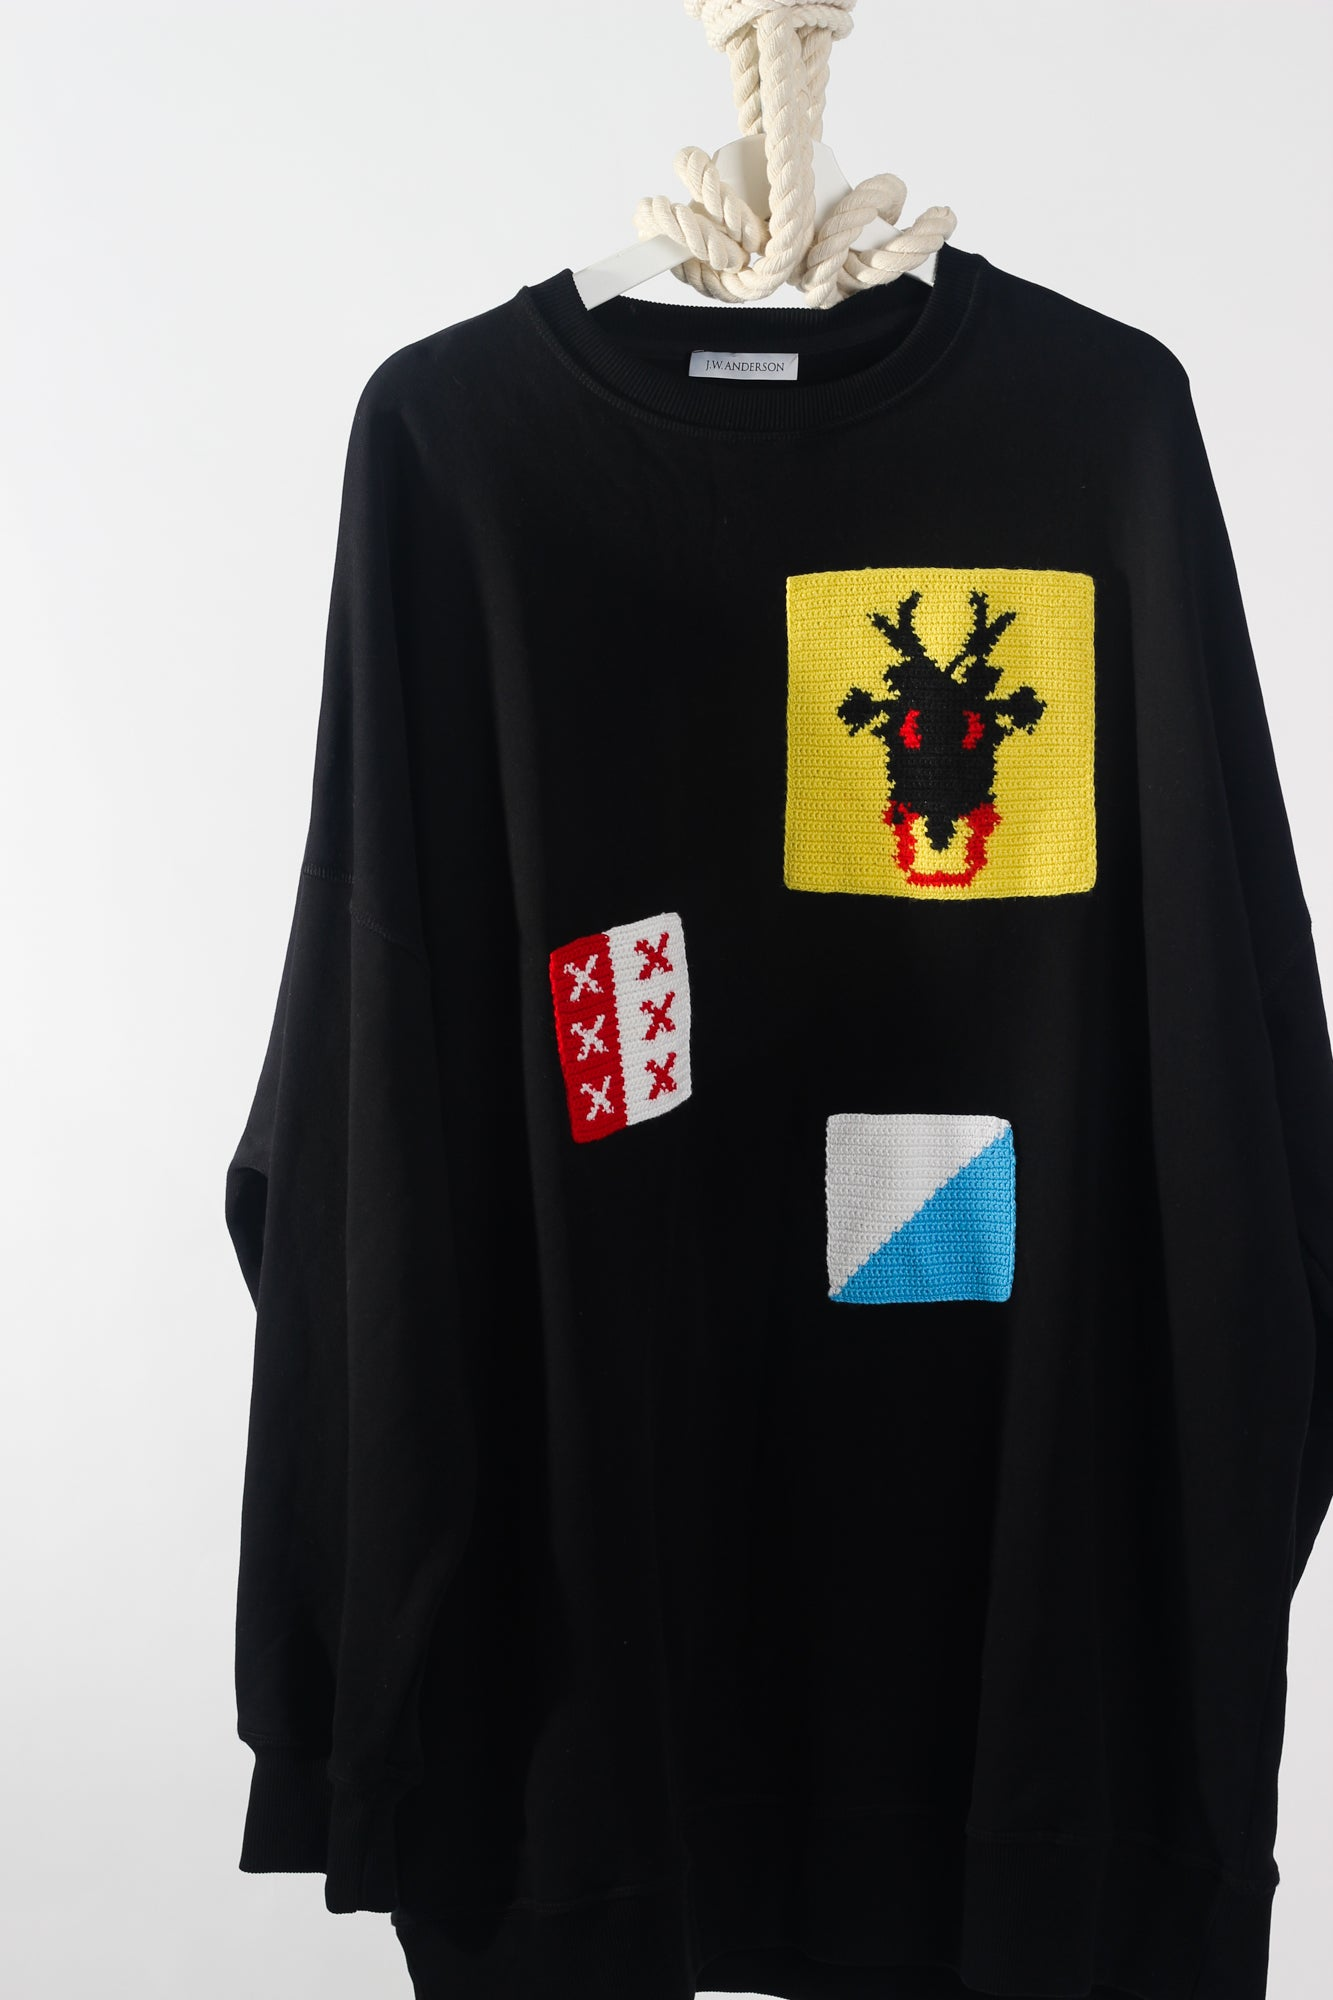 JW ANDERSON OVERSIZED JERSEY SWEATSHIRT W/ PATCHES - ONE SIZE